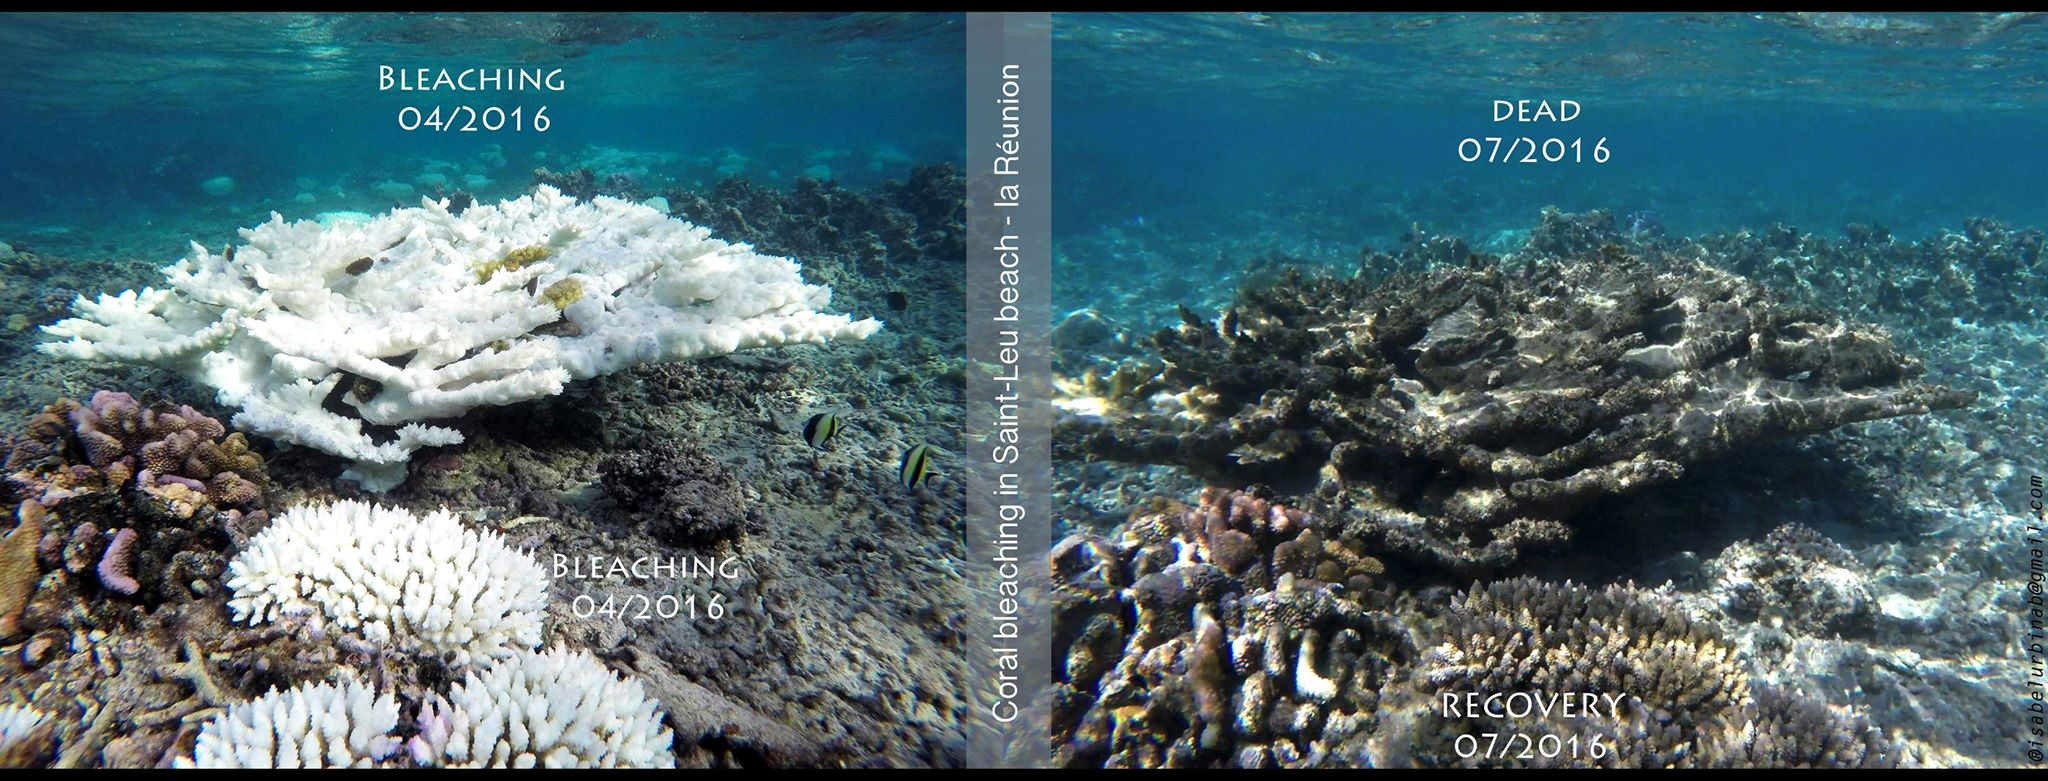 images showing bleached and dead coral.